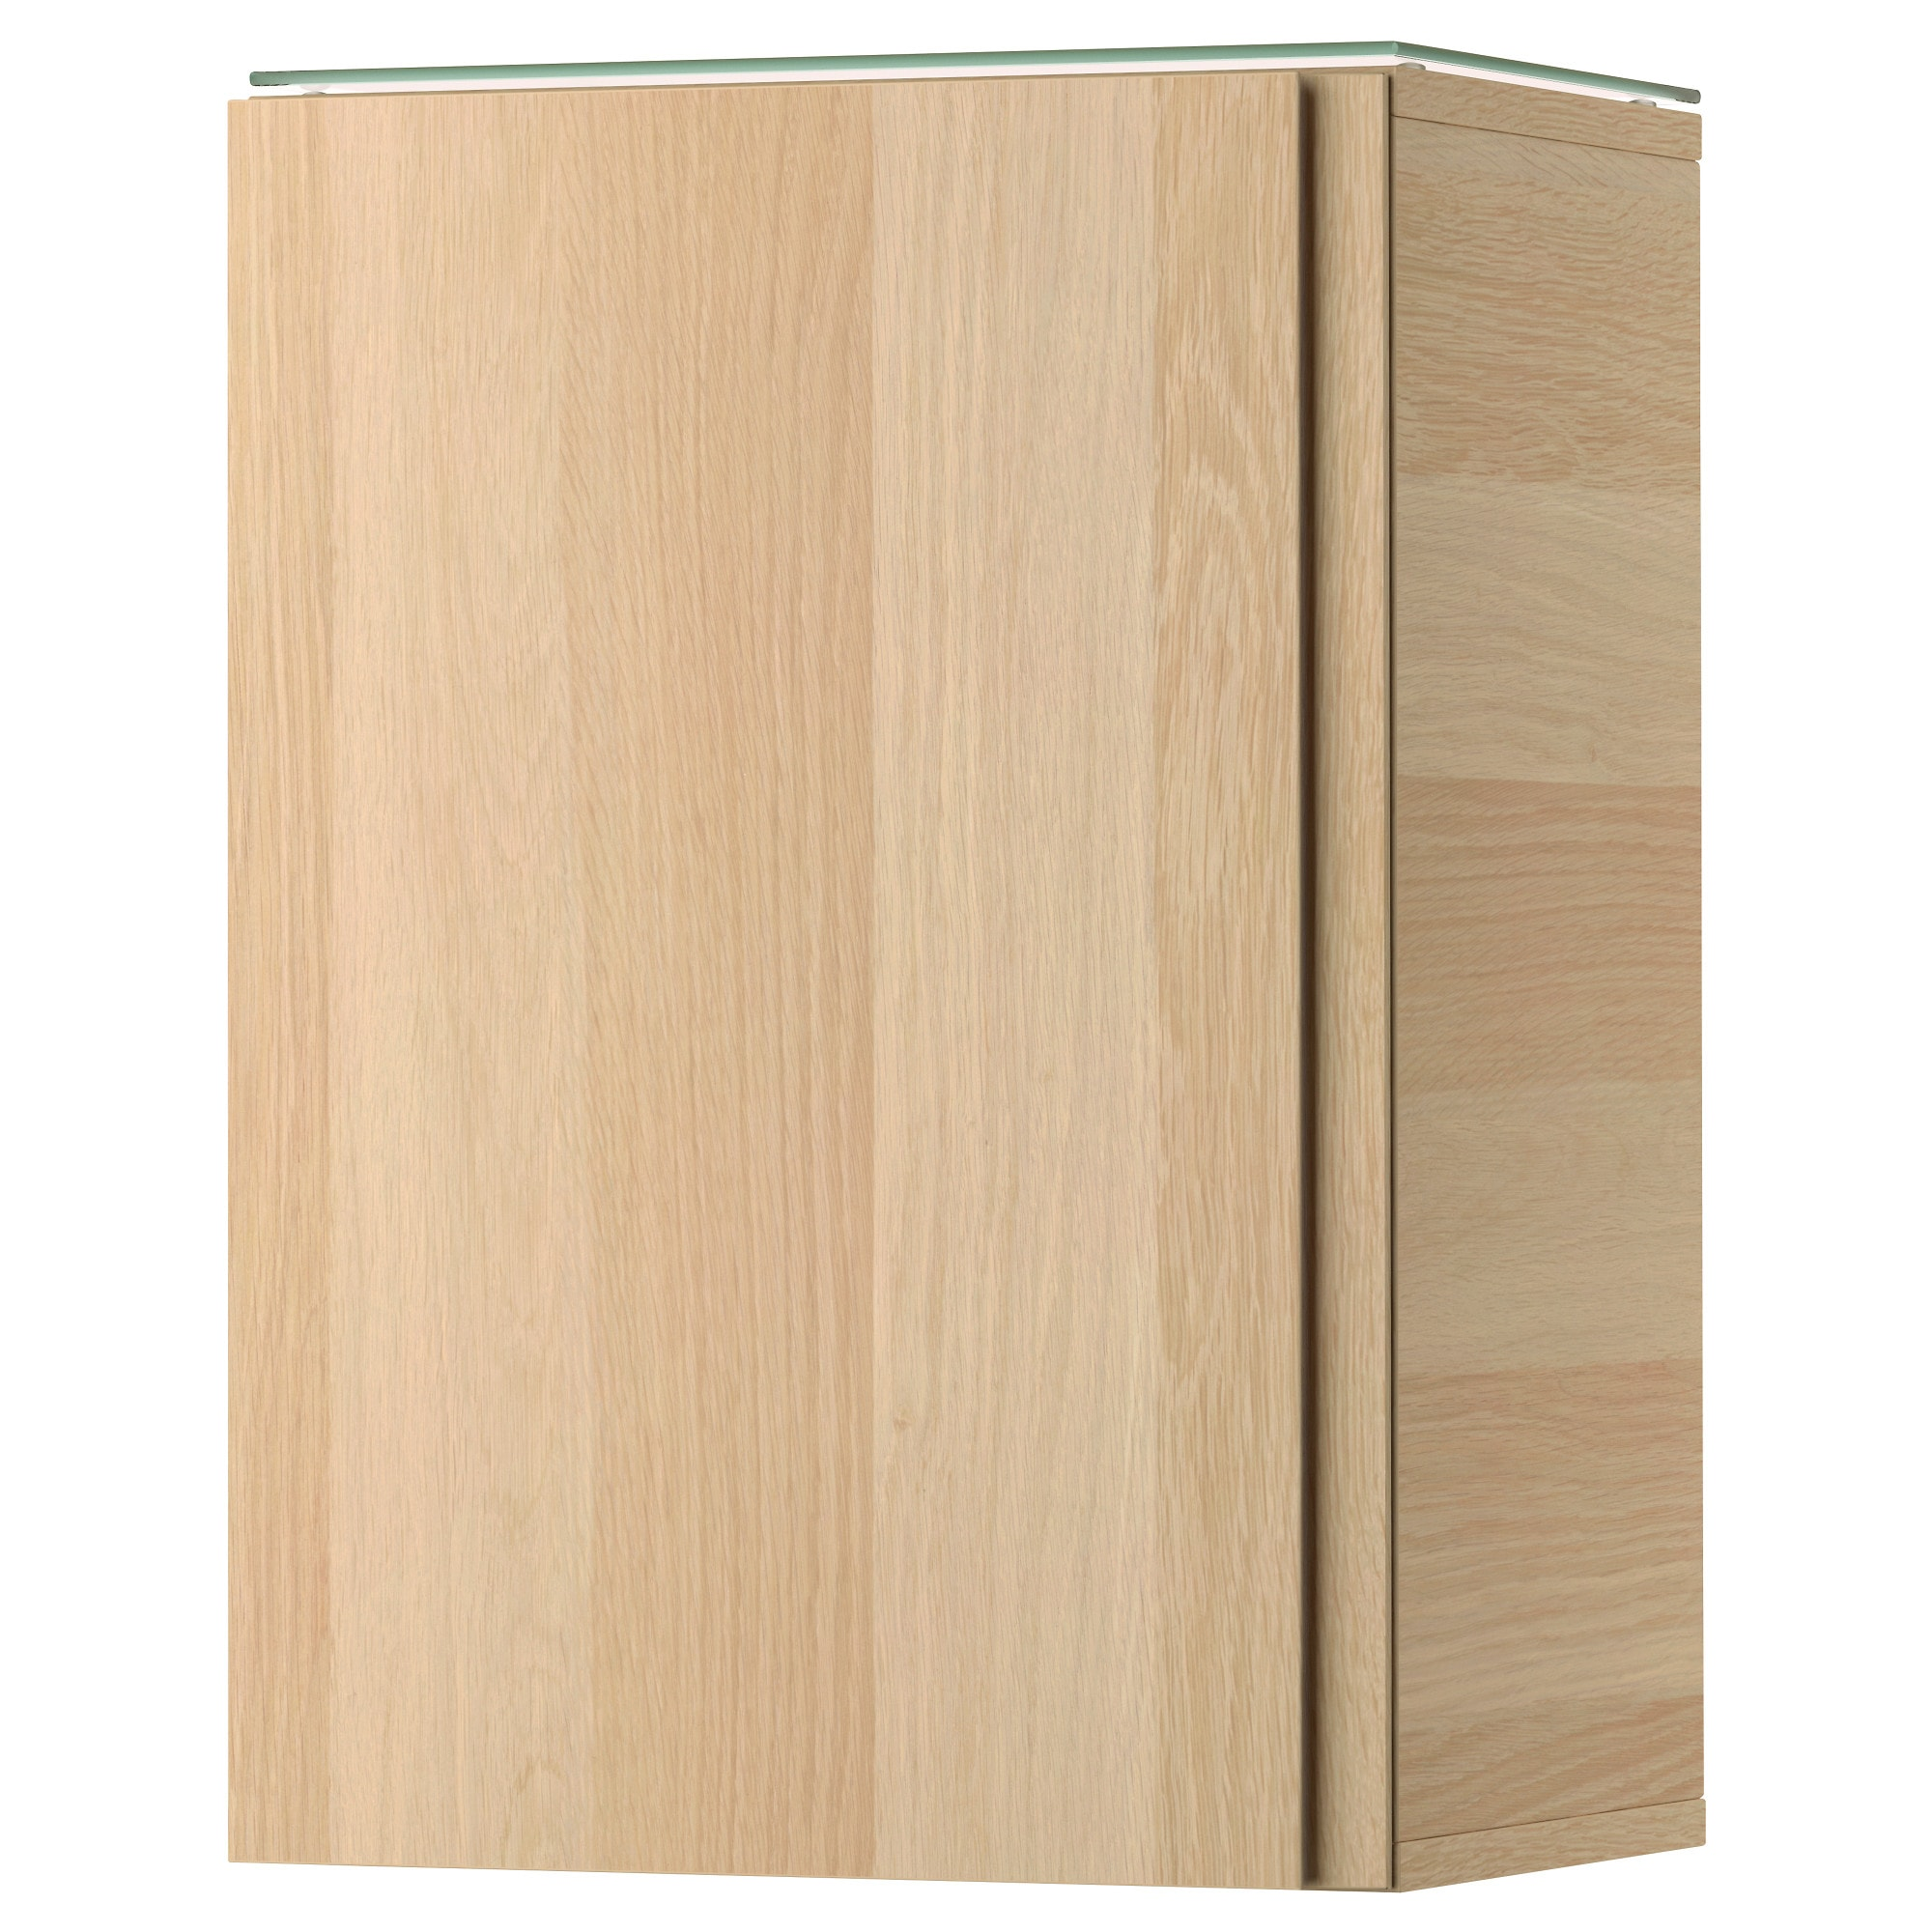 GODMORGON Wall cabinet with 1 door white stained oak effect 15